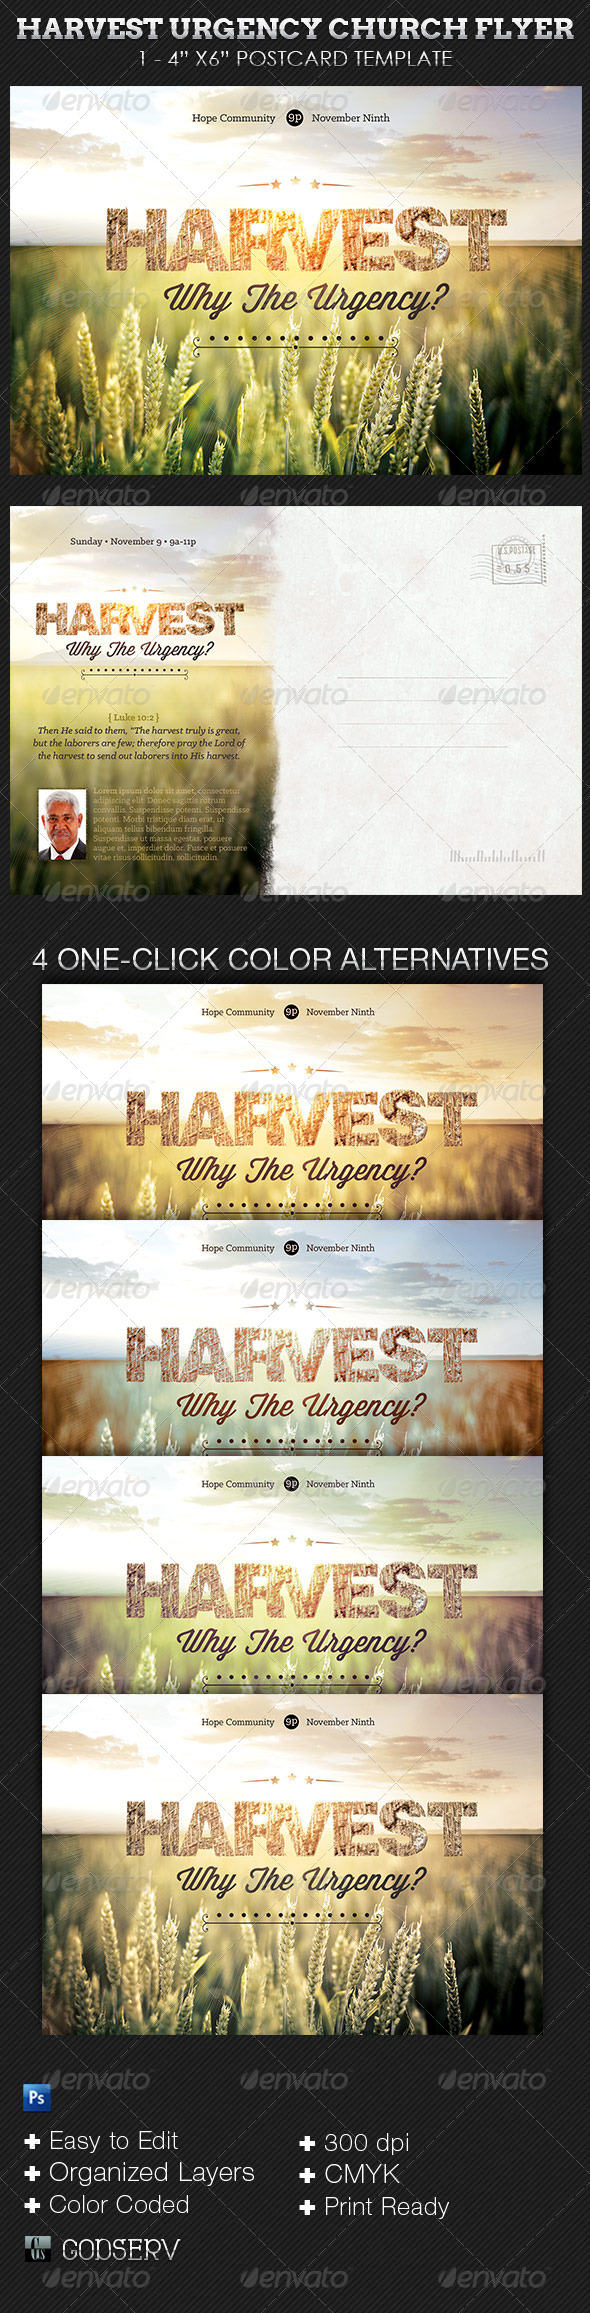 Harvest Urgency Church Flyer and Postcard Template - Church Flyers